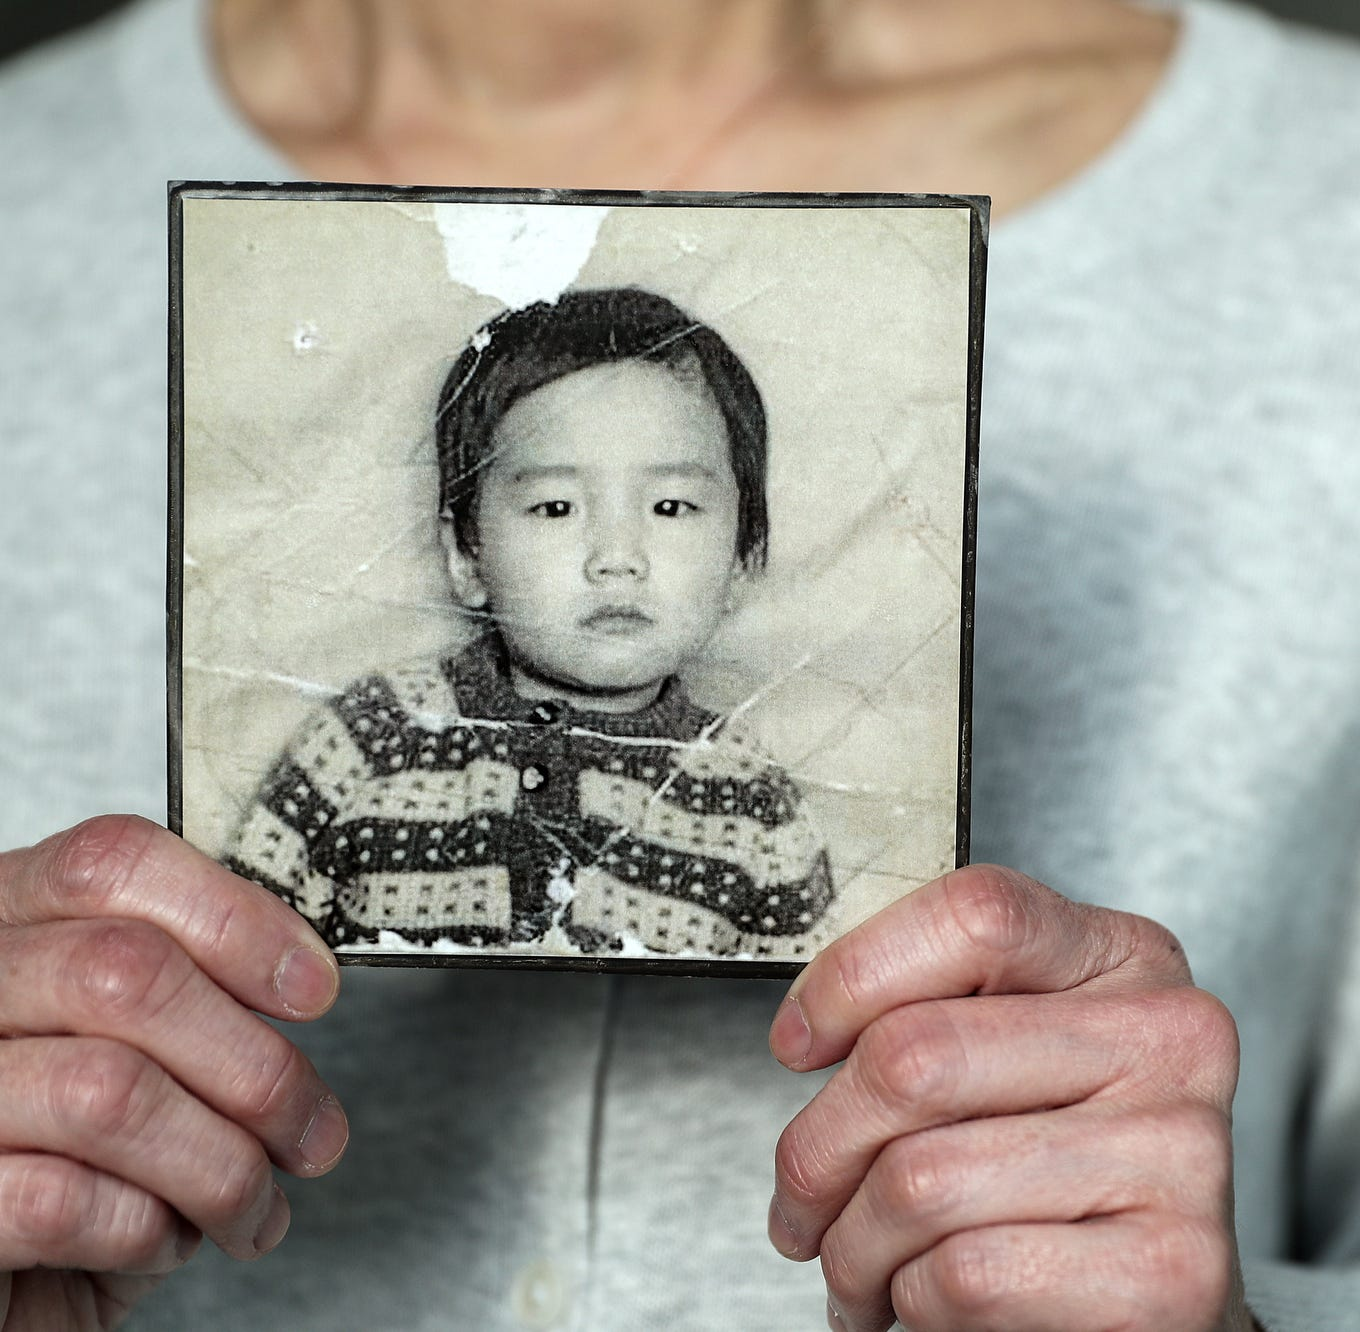 'My mom wasn't gonna let me go': Indiana woman reunites with South Korean family 50 years later